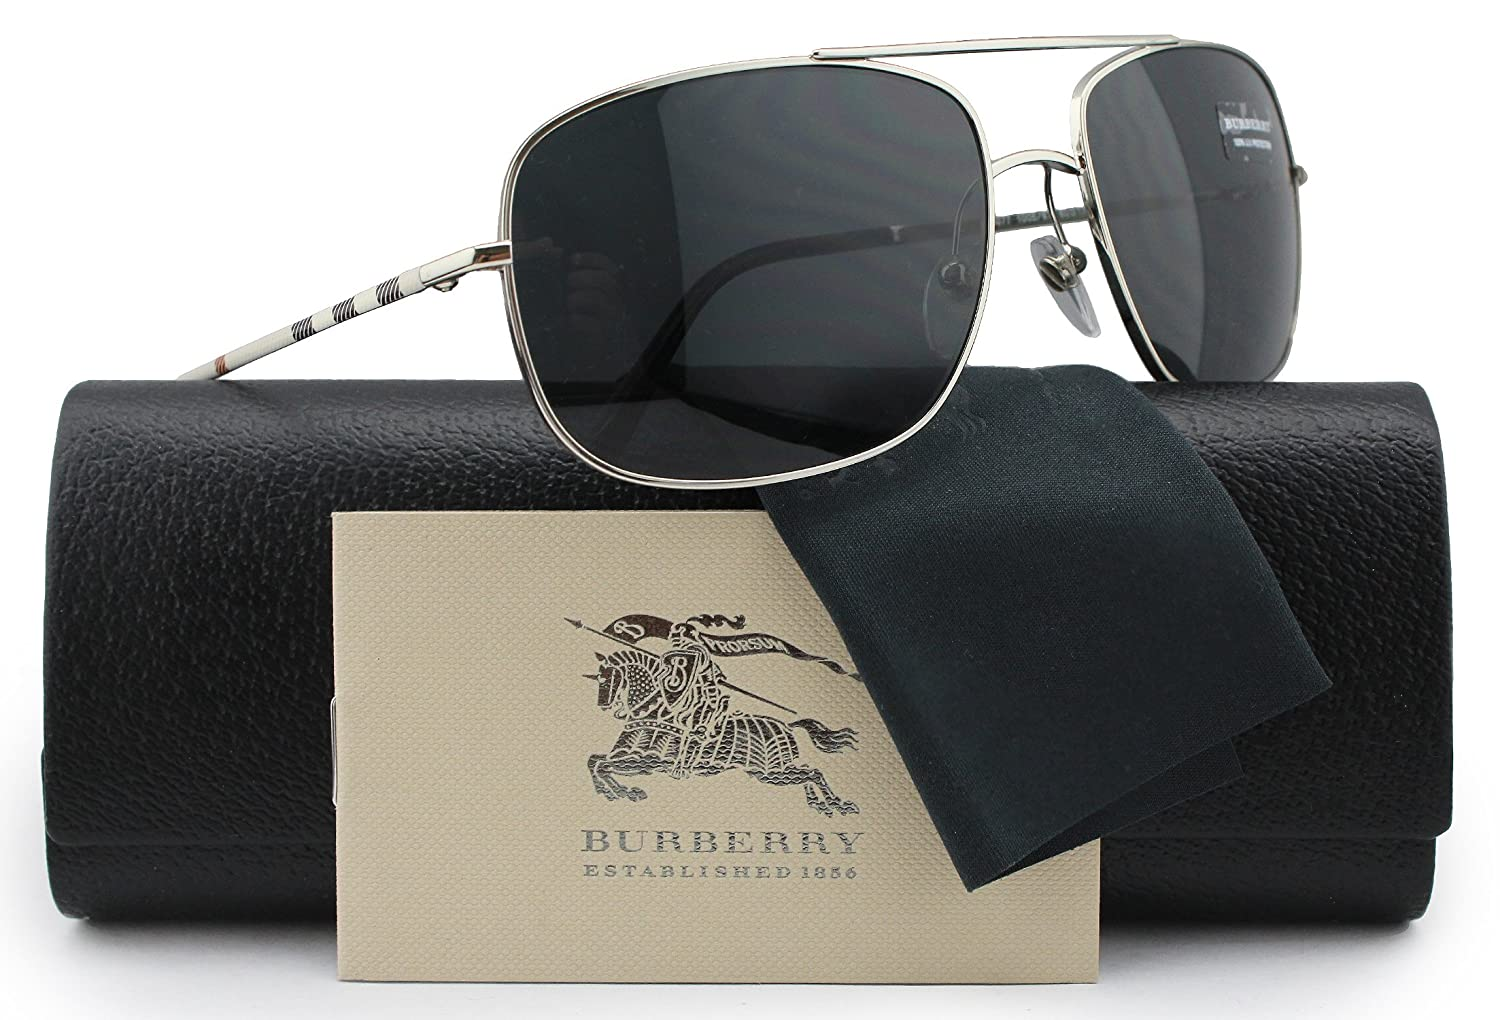 7cc56427286 Color Code  (1005 87) Silver w Crystal Grey Lens. Gender  Men Size   60-17-135. Made  Italy Show more. DEAR CUSTOMER PLEASE BE AWARE THAT TRUE  BRAND EYEWEAR ...